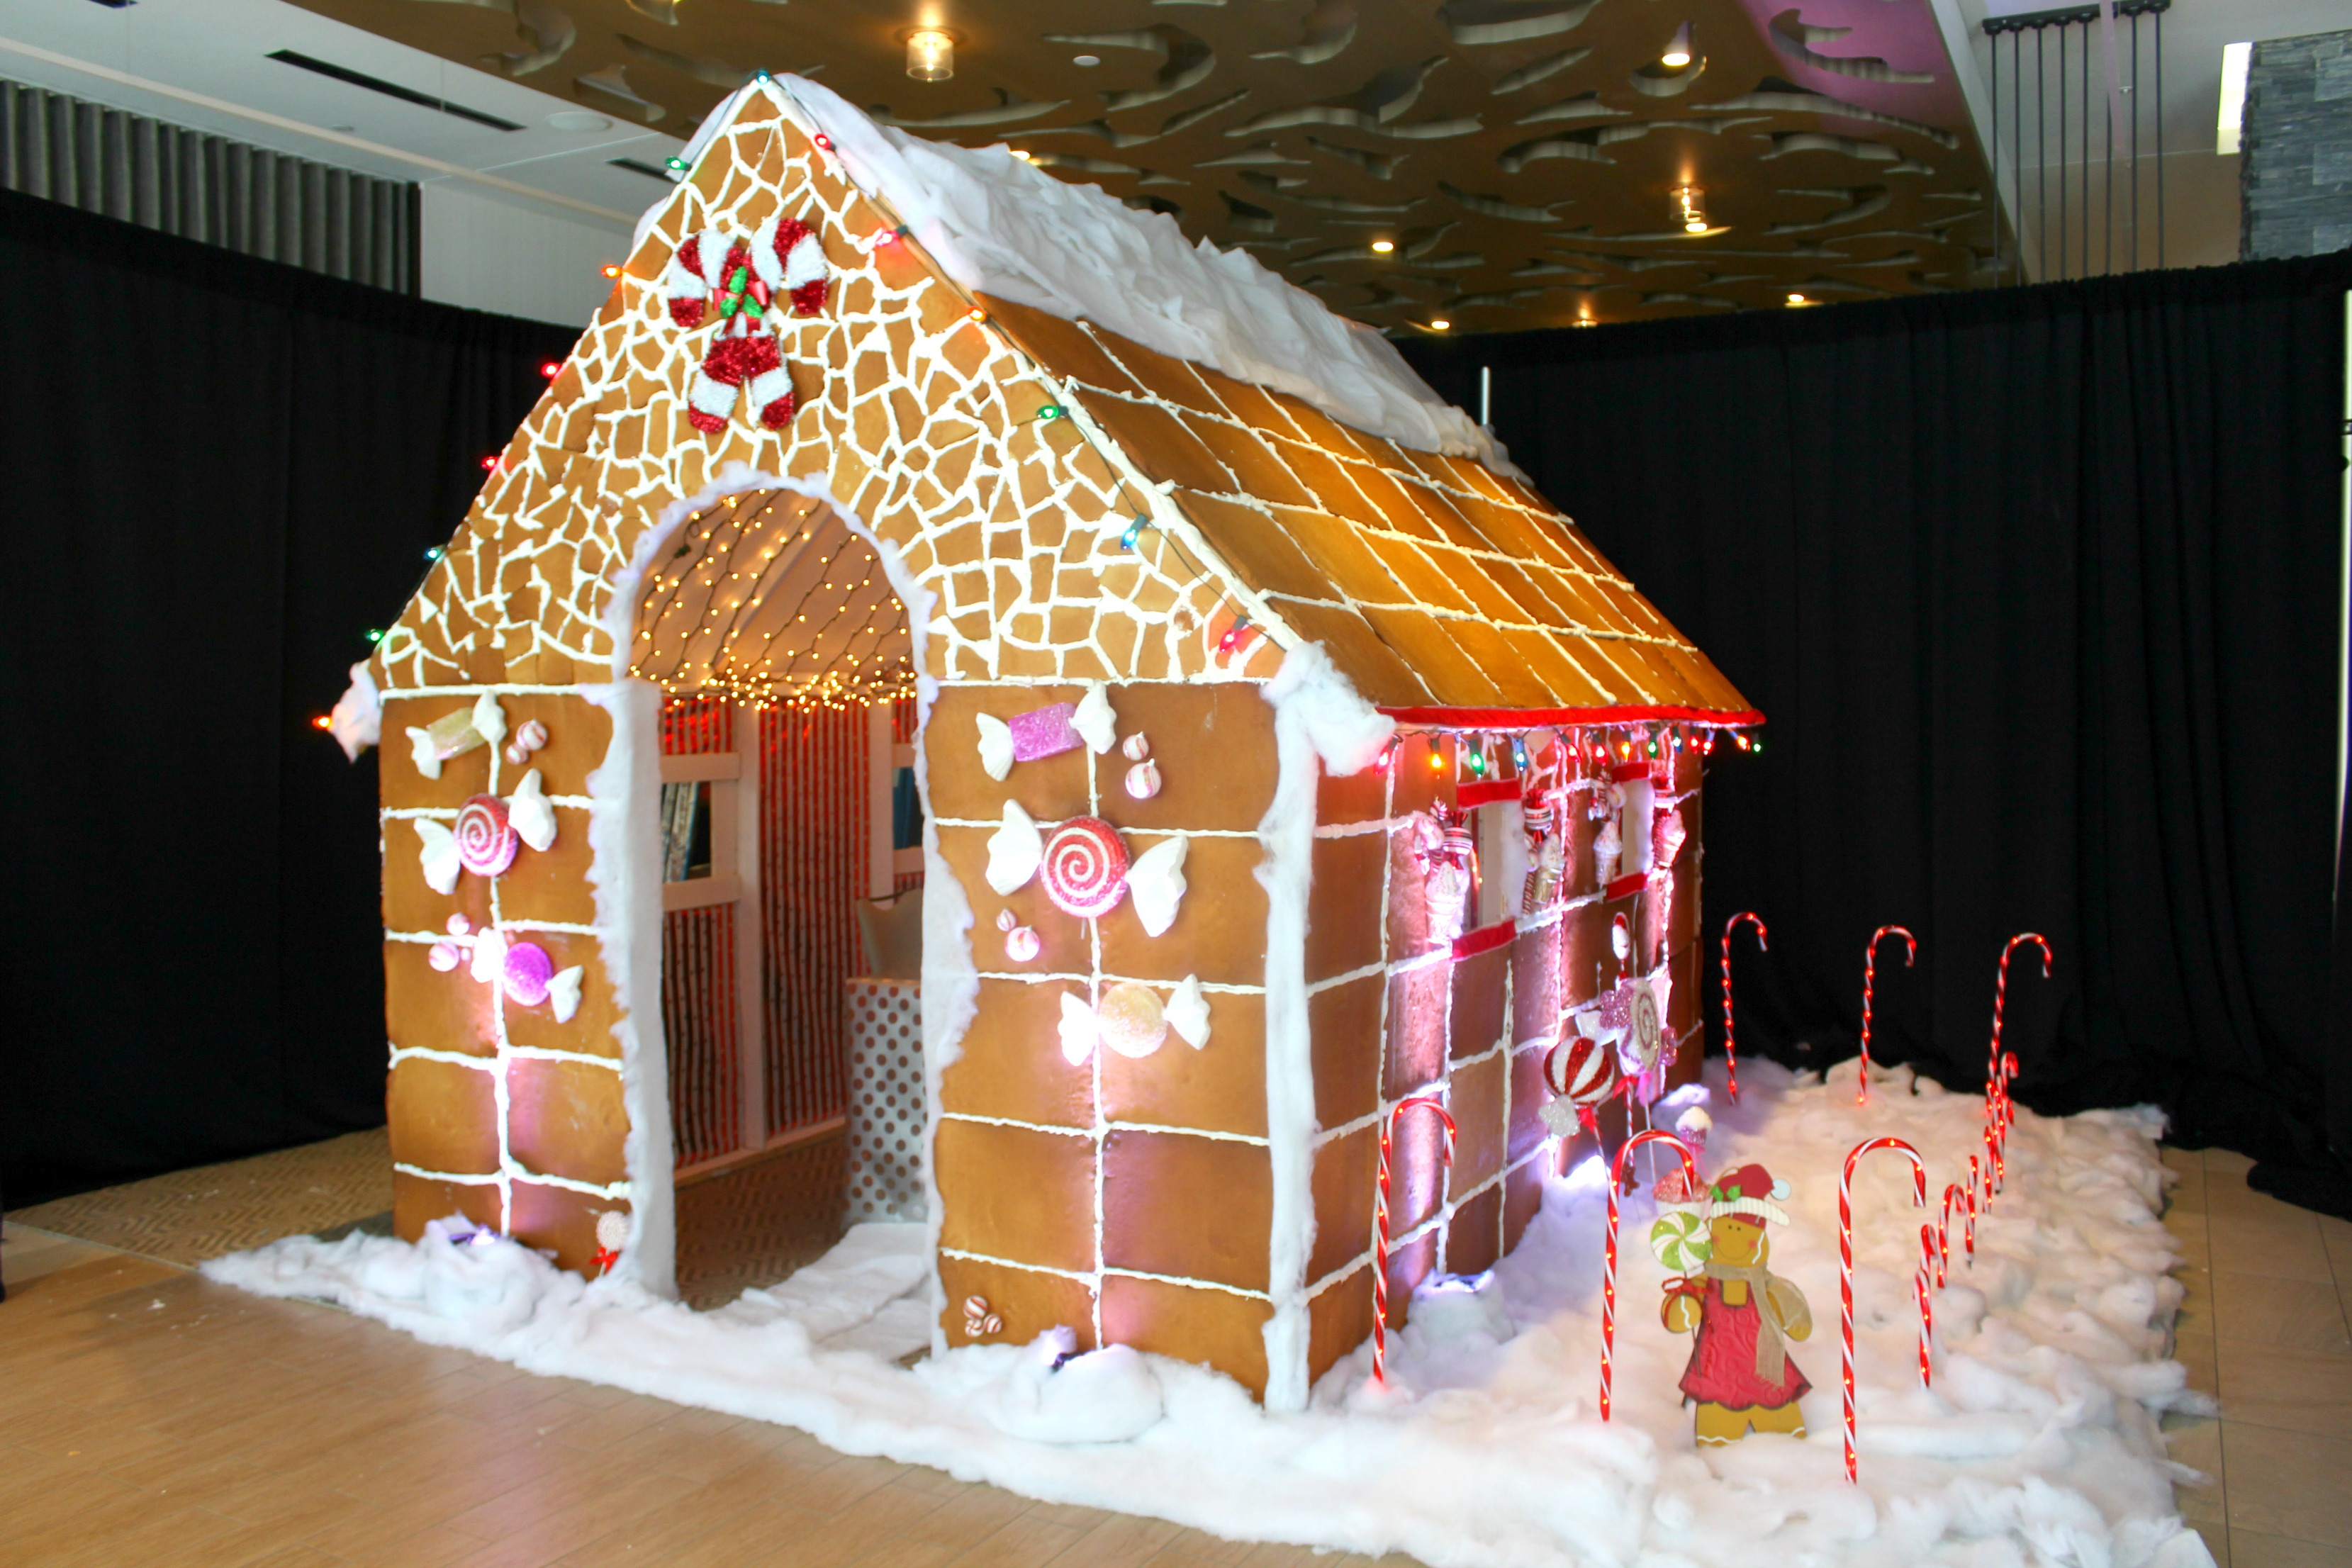 dine inside a texas sized gingerbread house in austin this holiday eater austin